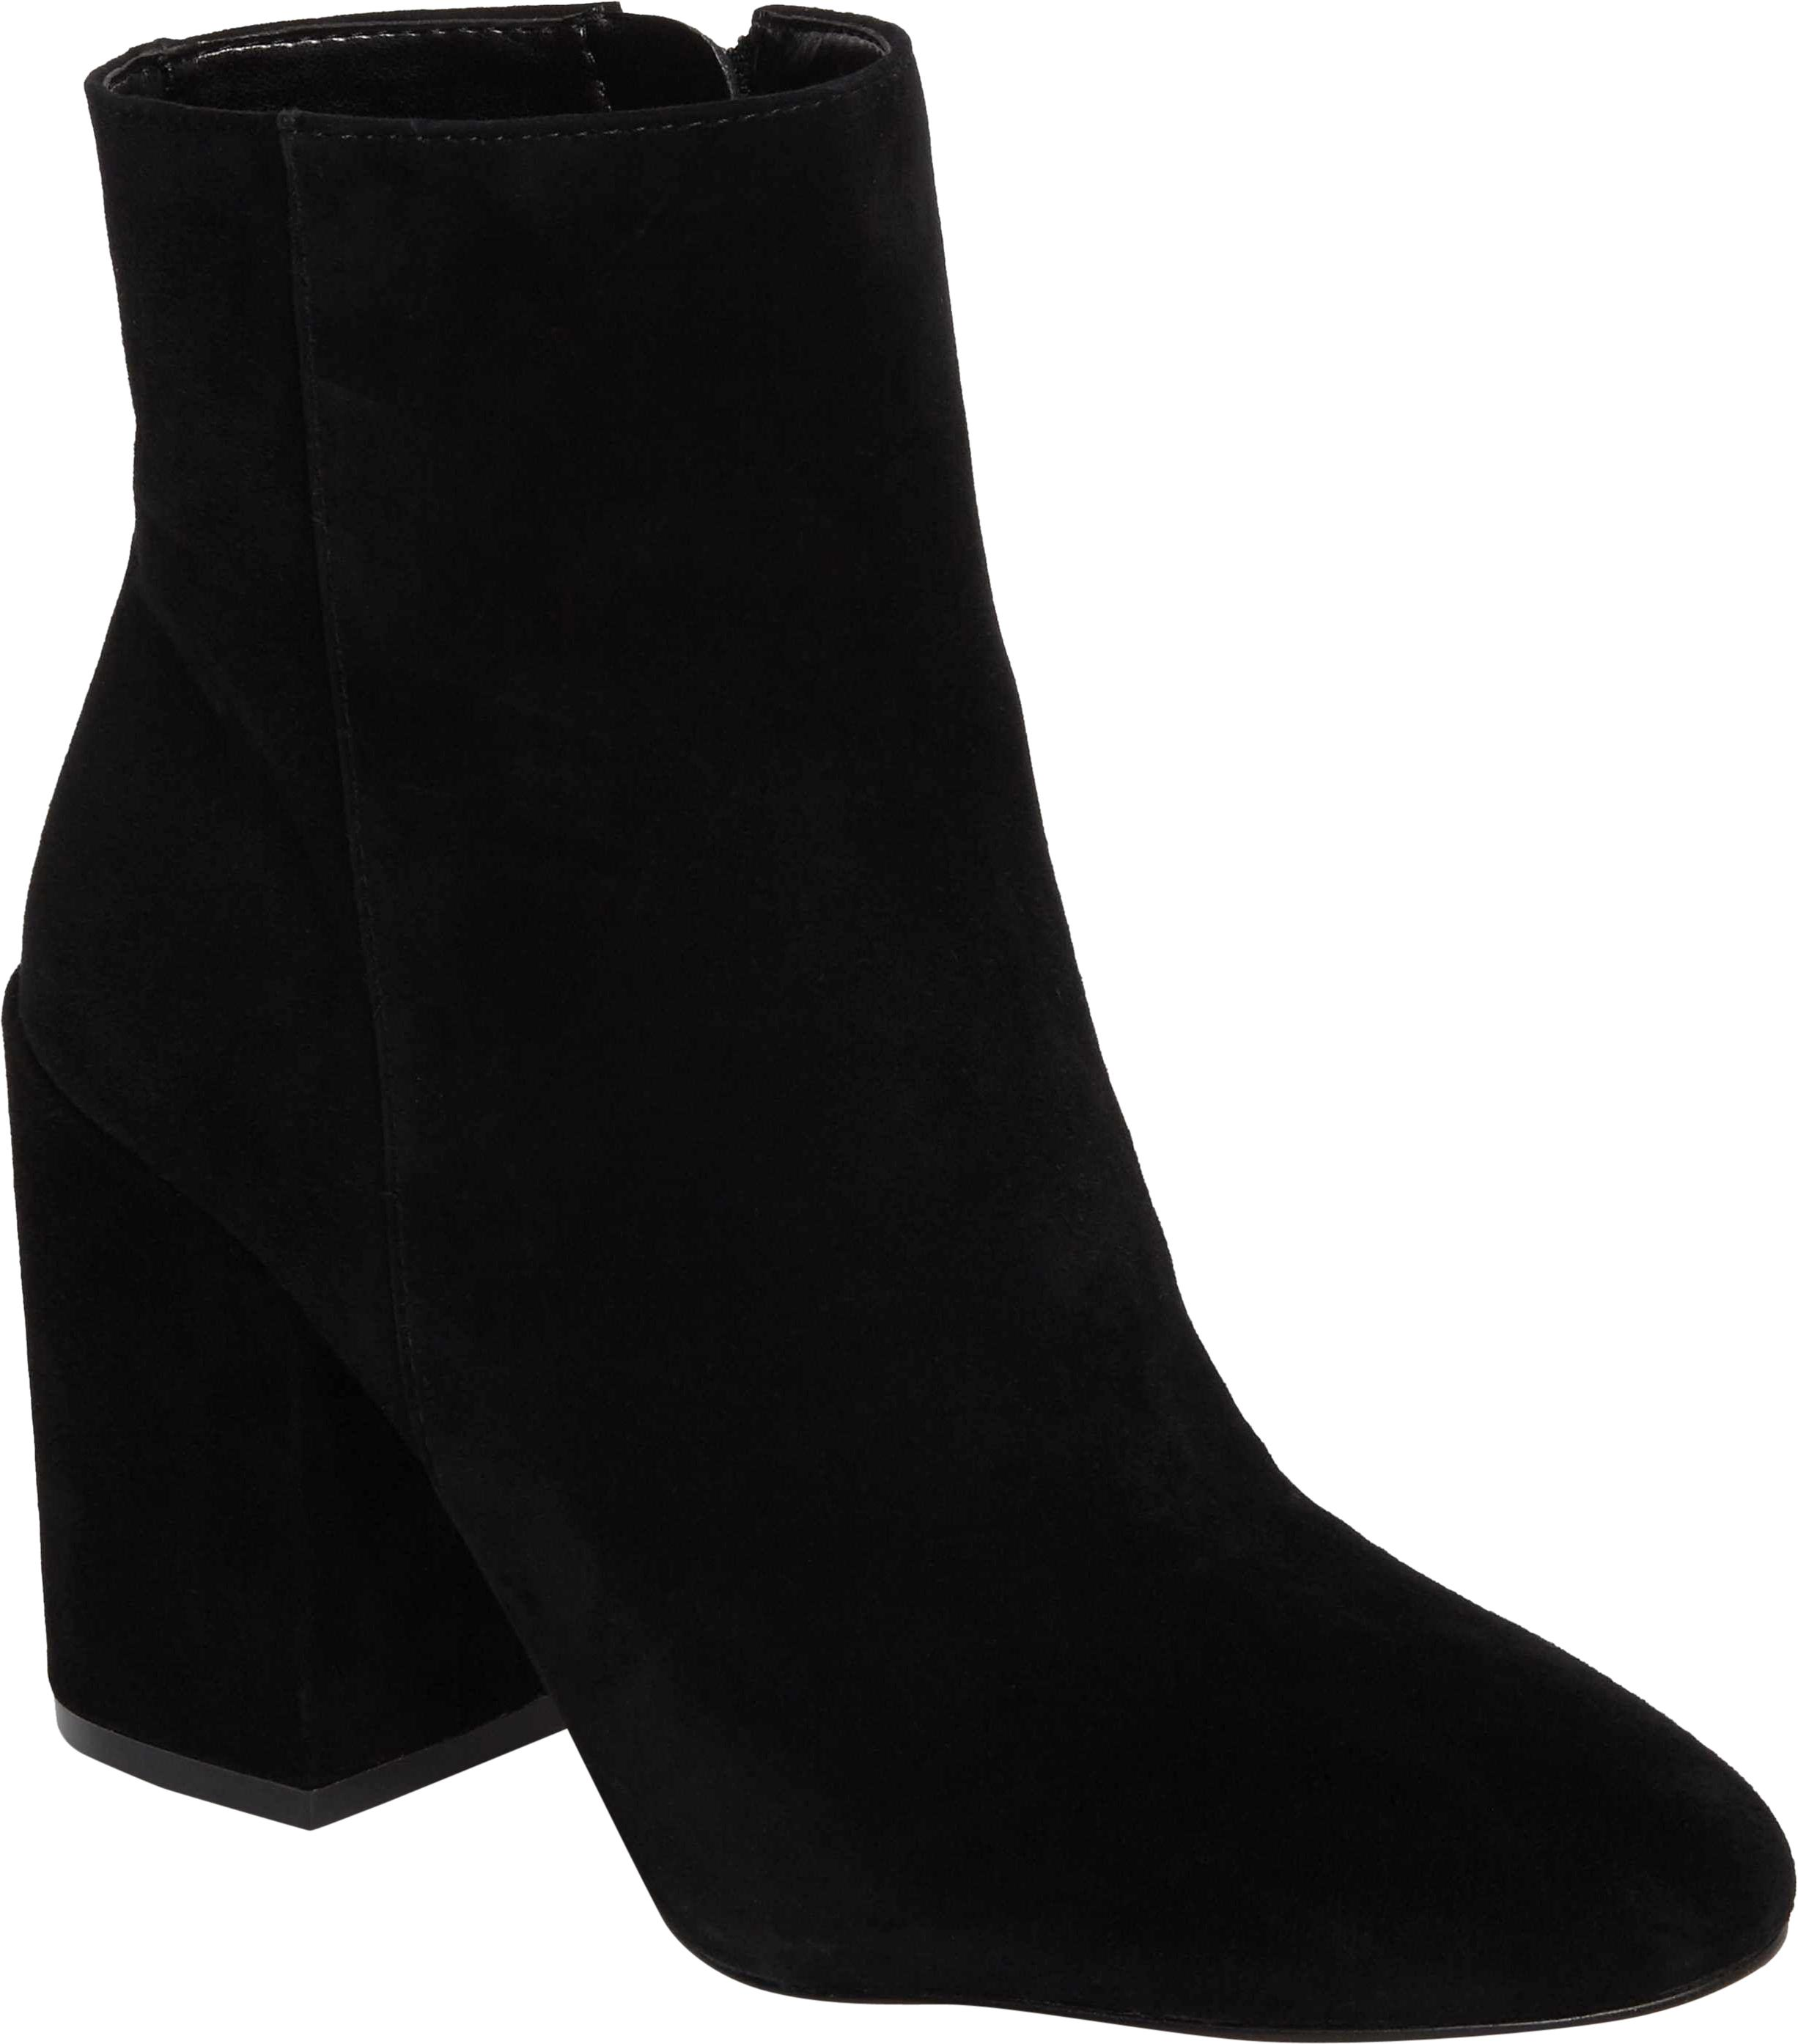 Vince Camuto Black Destilly Suede Leather Ankle Boots/Booties Size US 8.5 Regular (M, B)